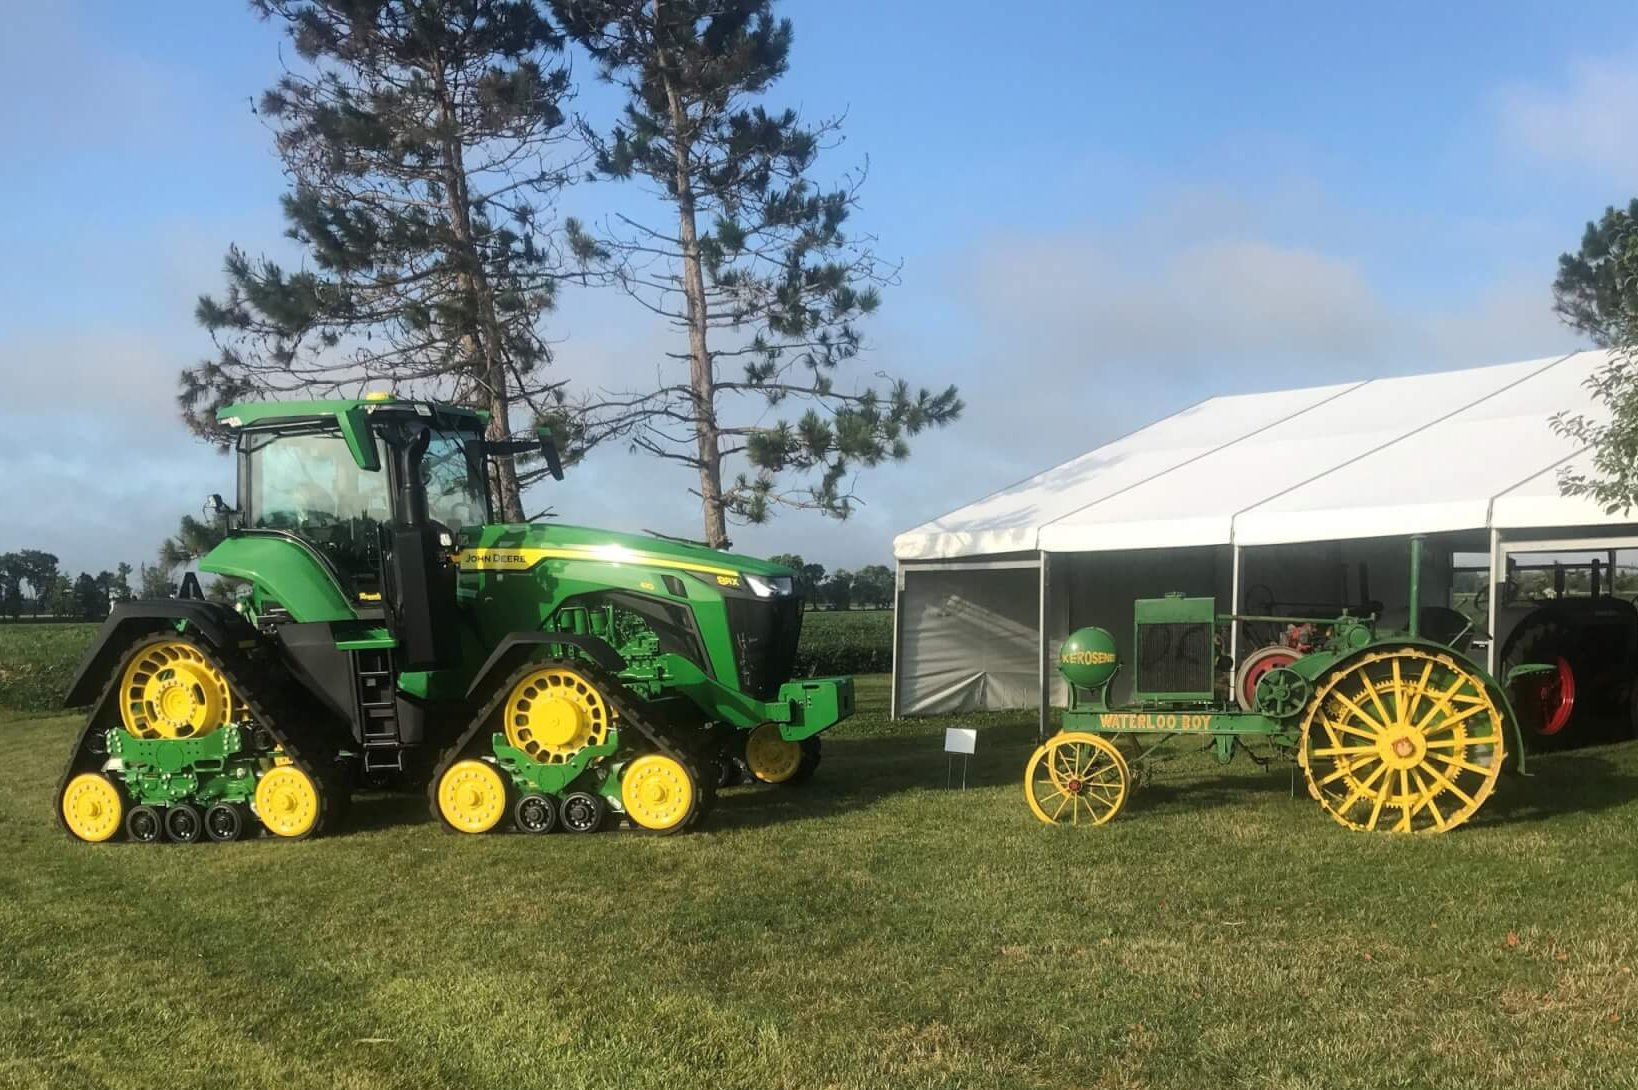 Fouts tractors